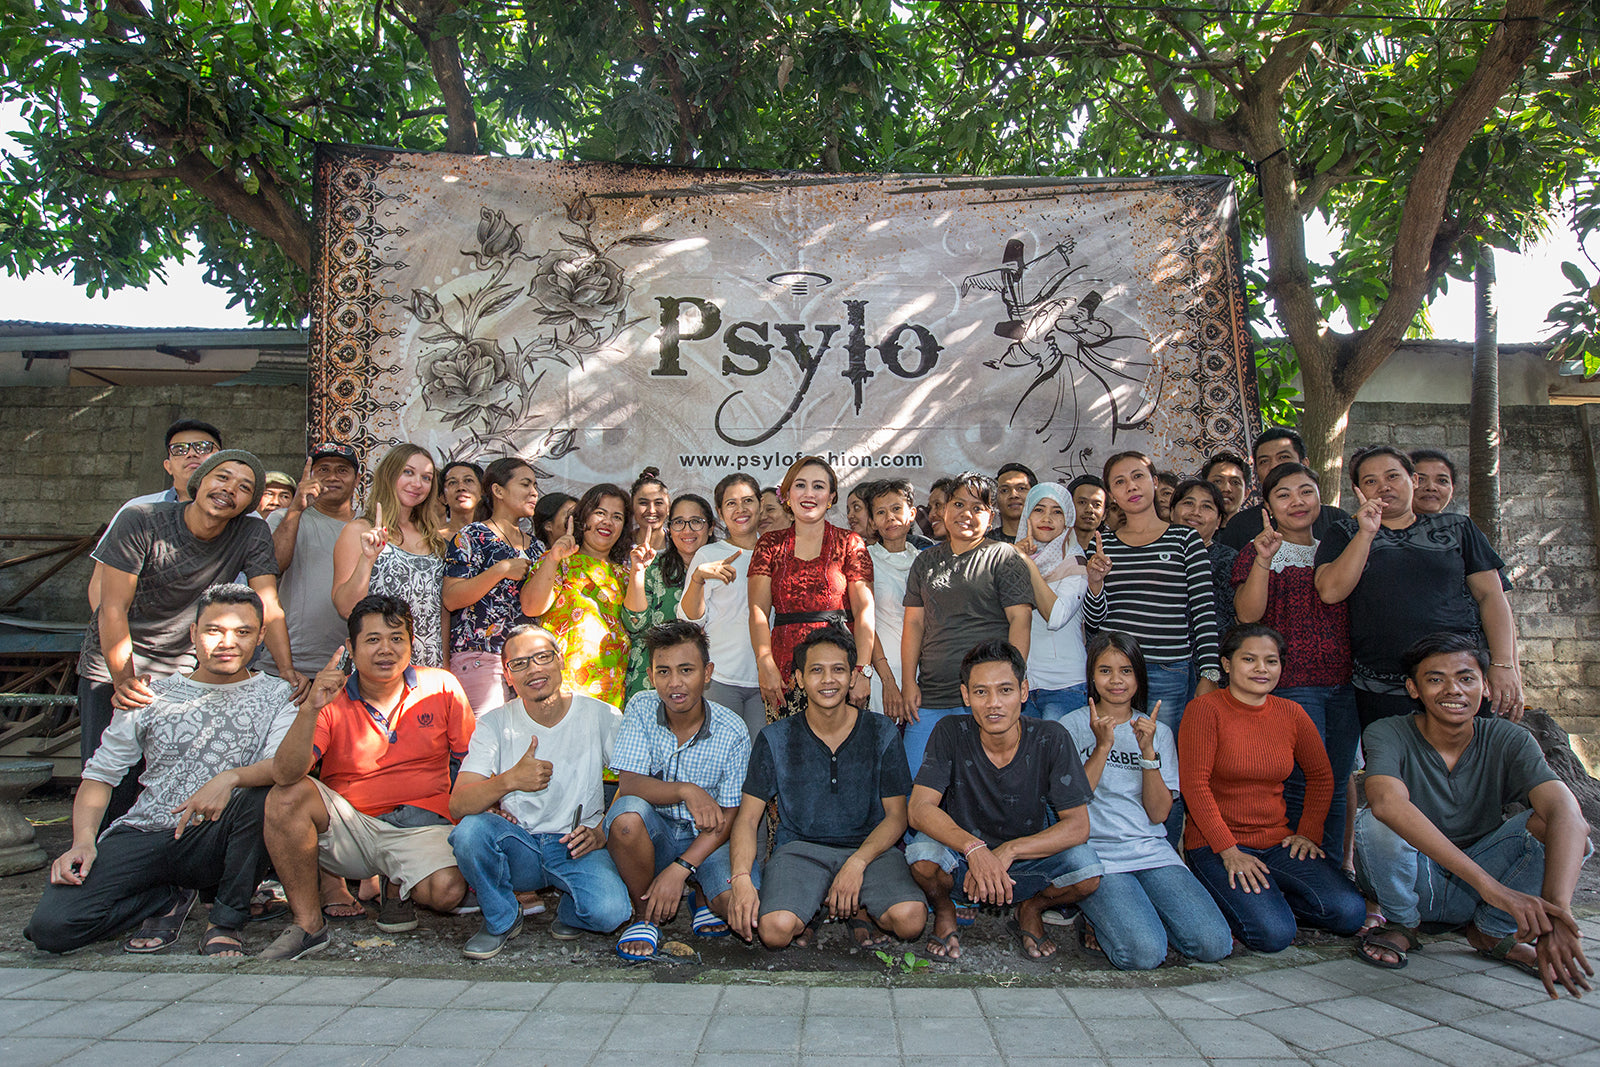 Psylo fashion Bali team the people who make ethical streetwear at Psylo